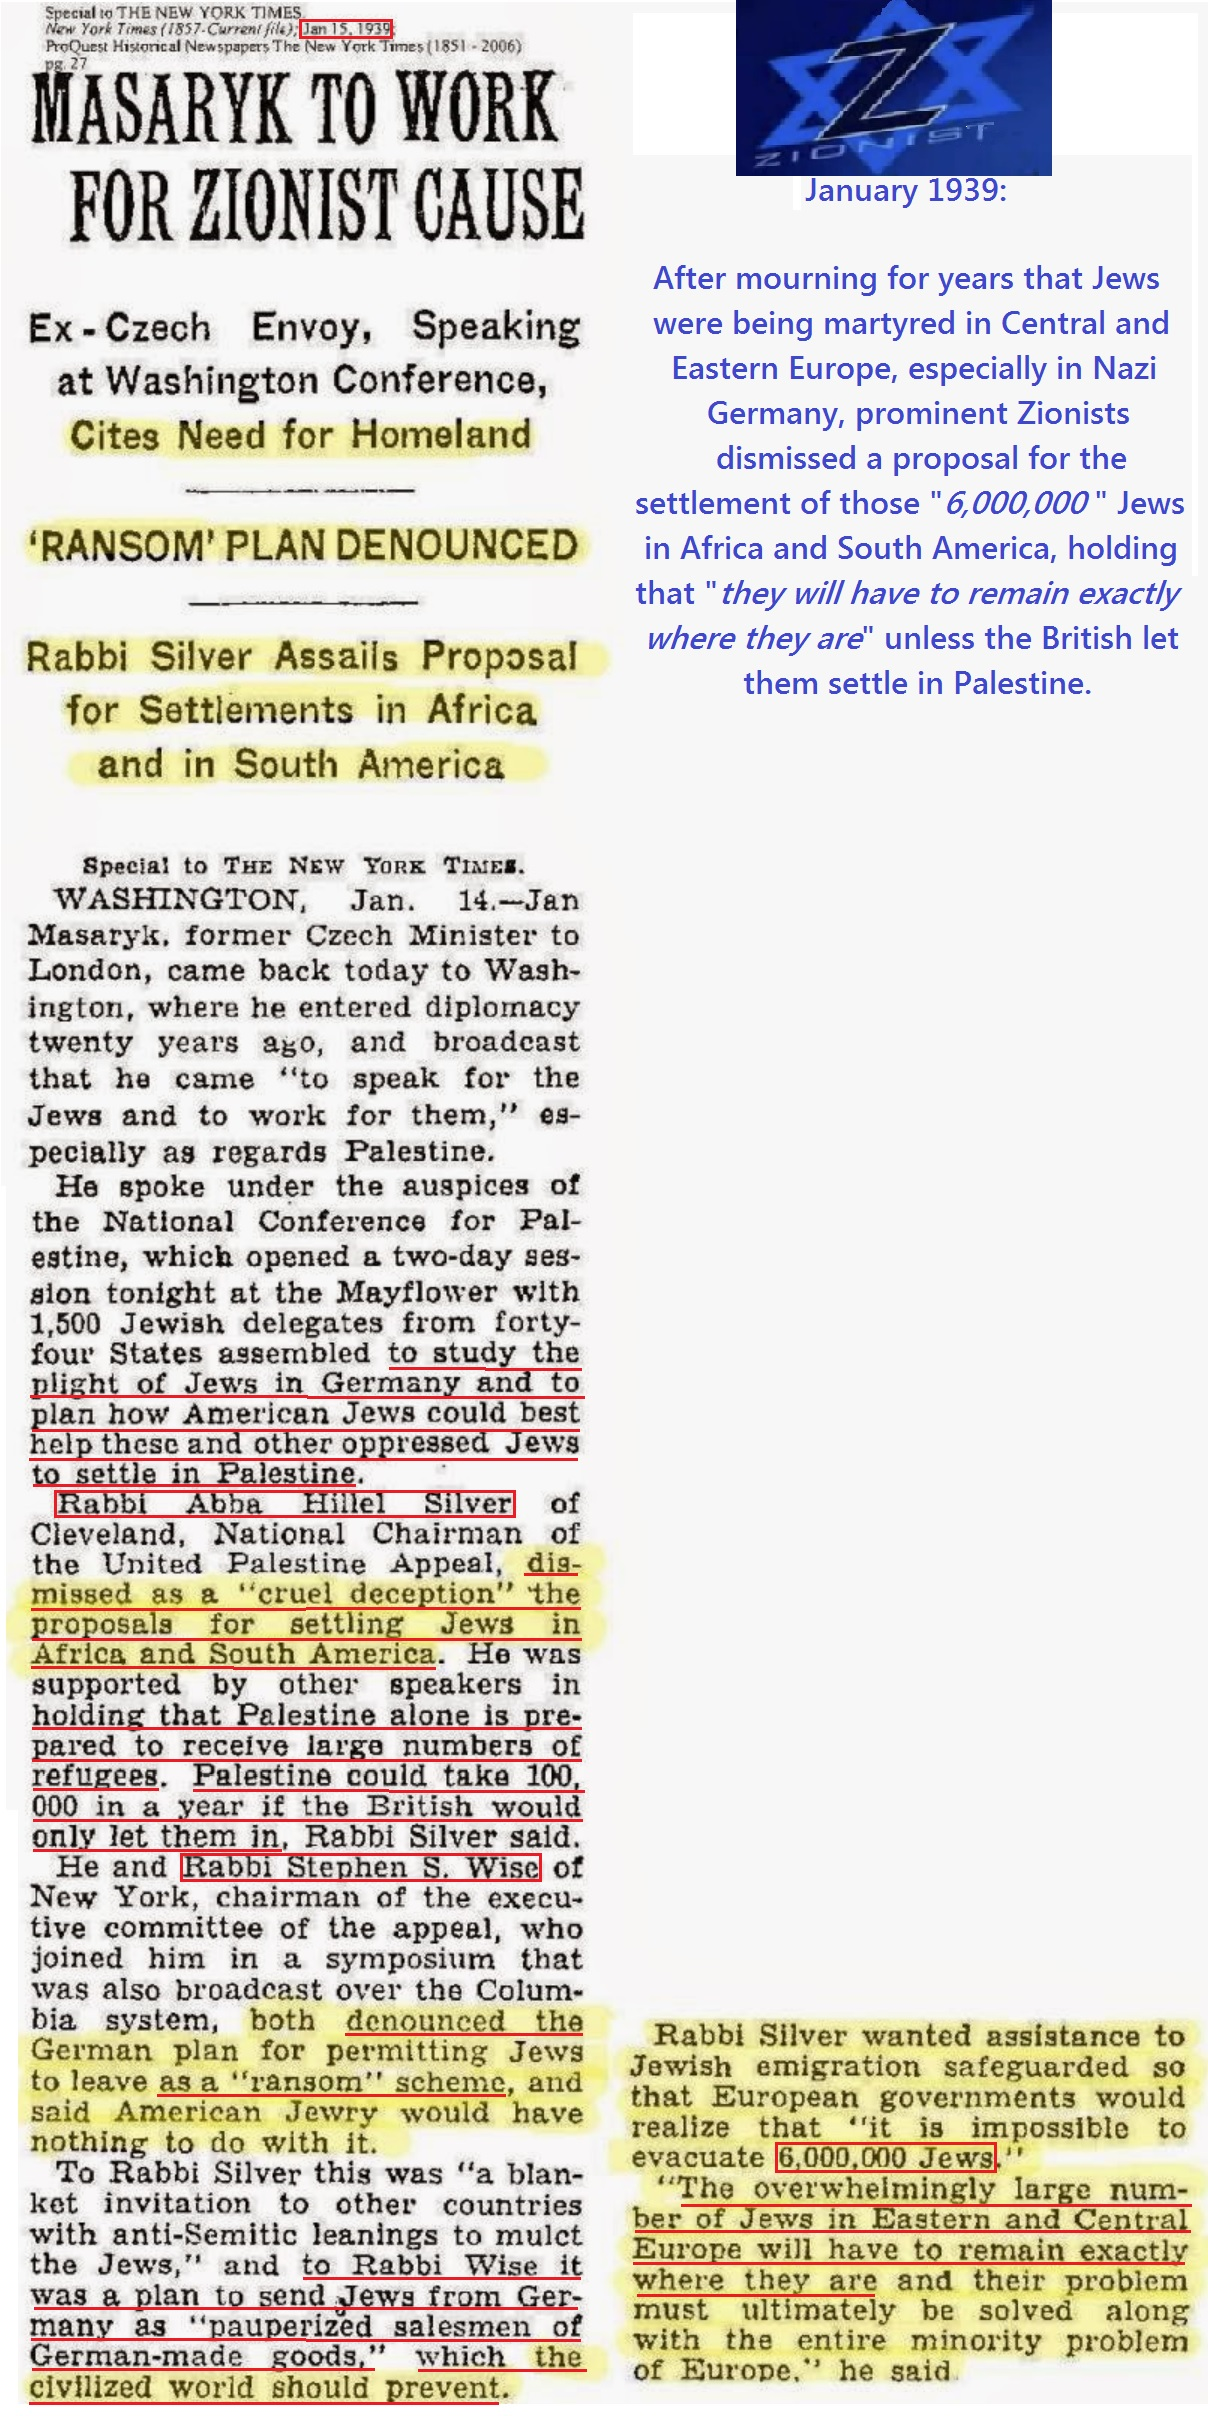 Holocaust - The New York Times - January 1939 - Zionist Rabbi Silver and Rabbi Wise refuse to let settle 6 million Jews in Africa and South America, only in Palestine.jpg